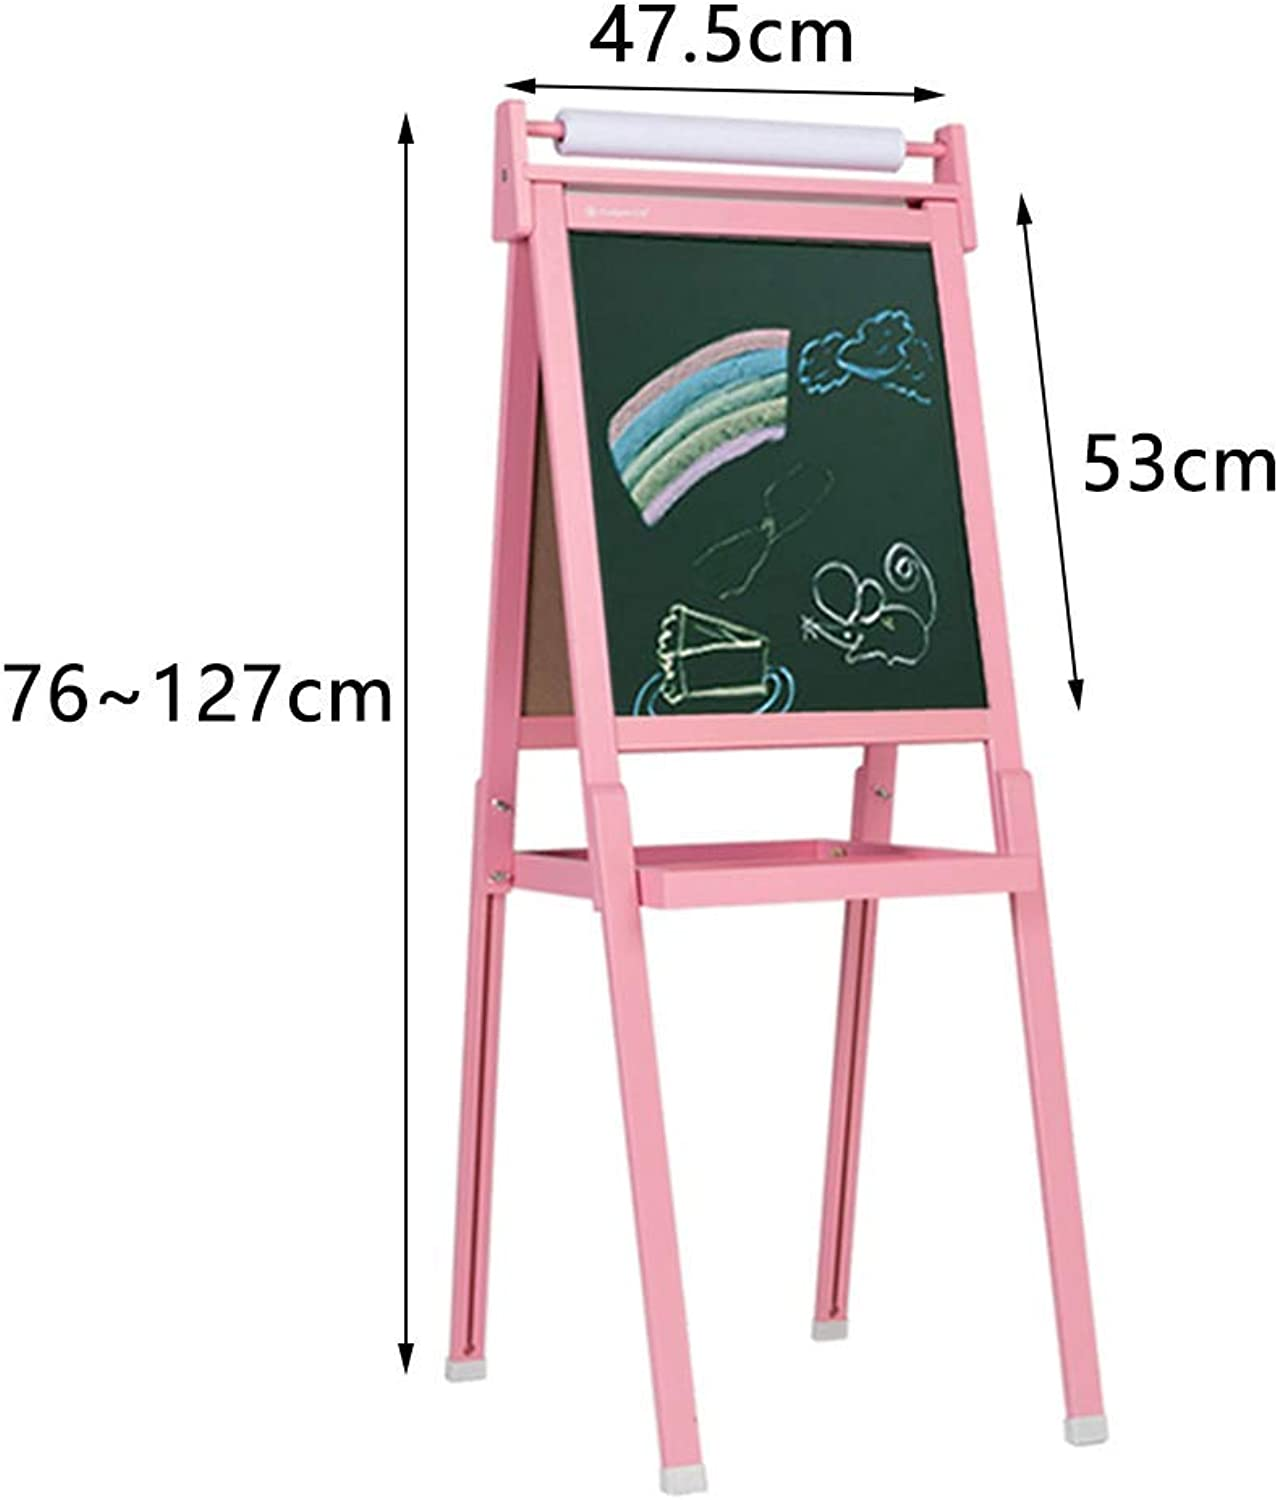 JZX Wooden Drawing Board, Double-Sided Magnetic Flip Chart Display Stand